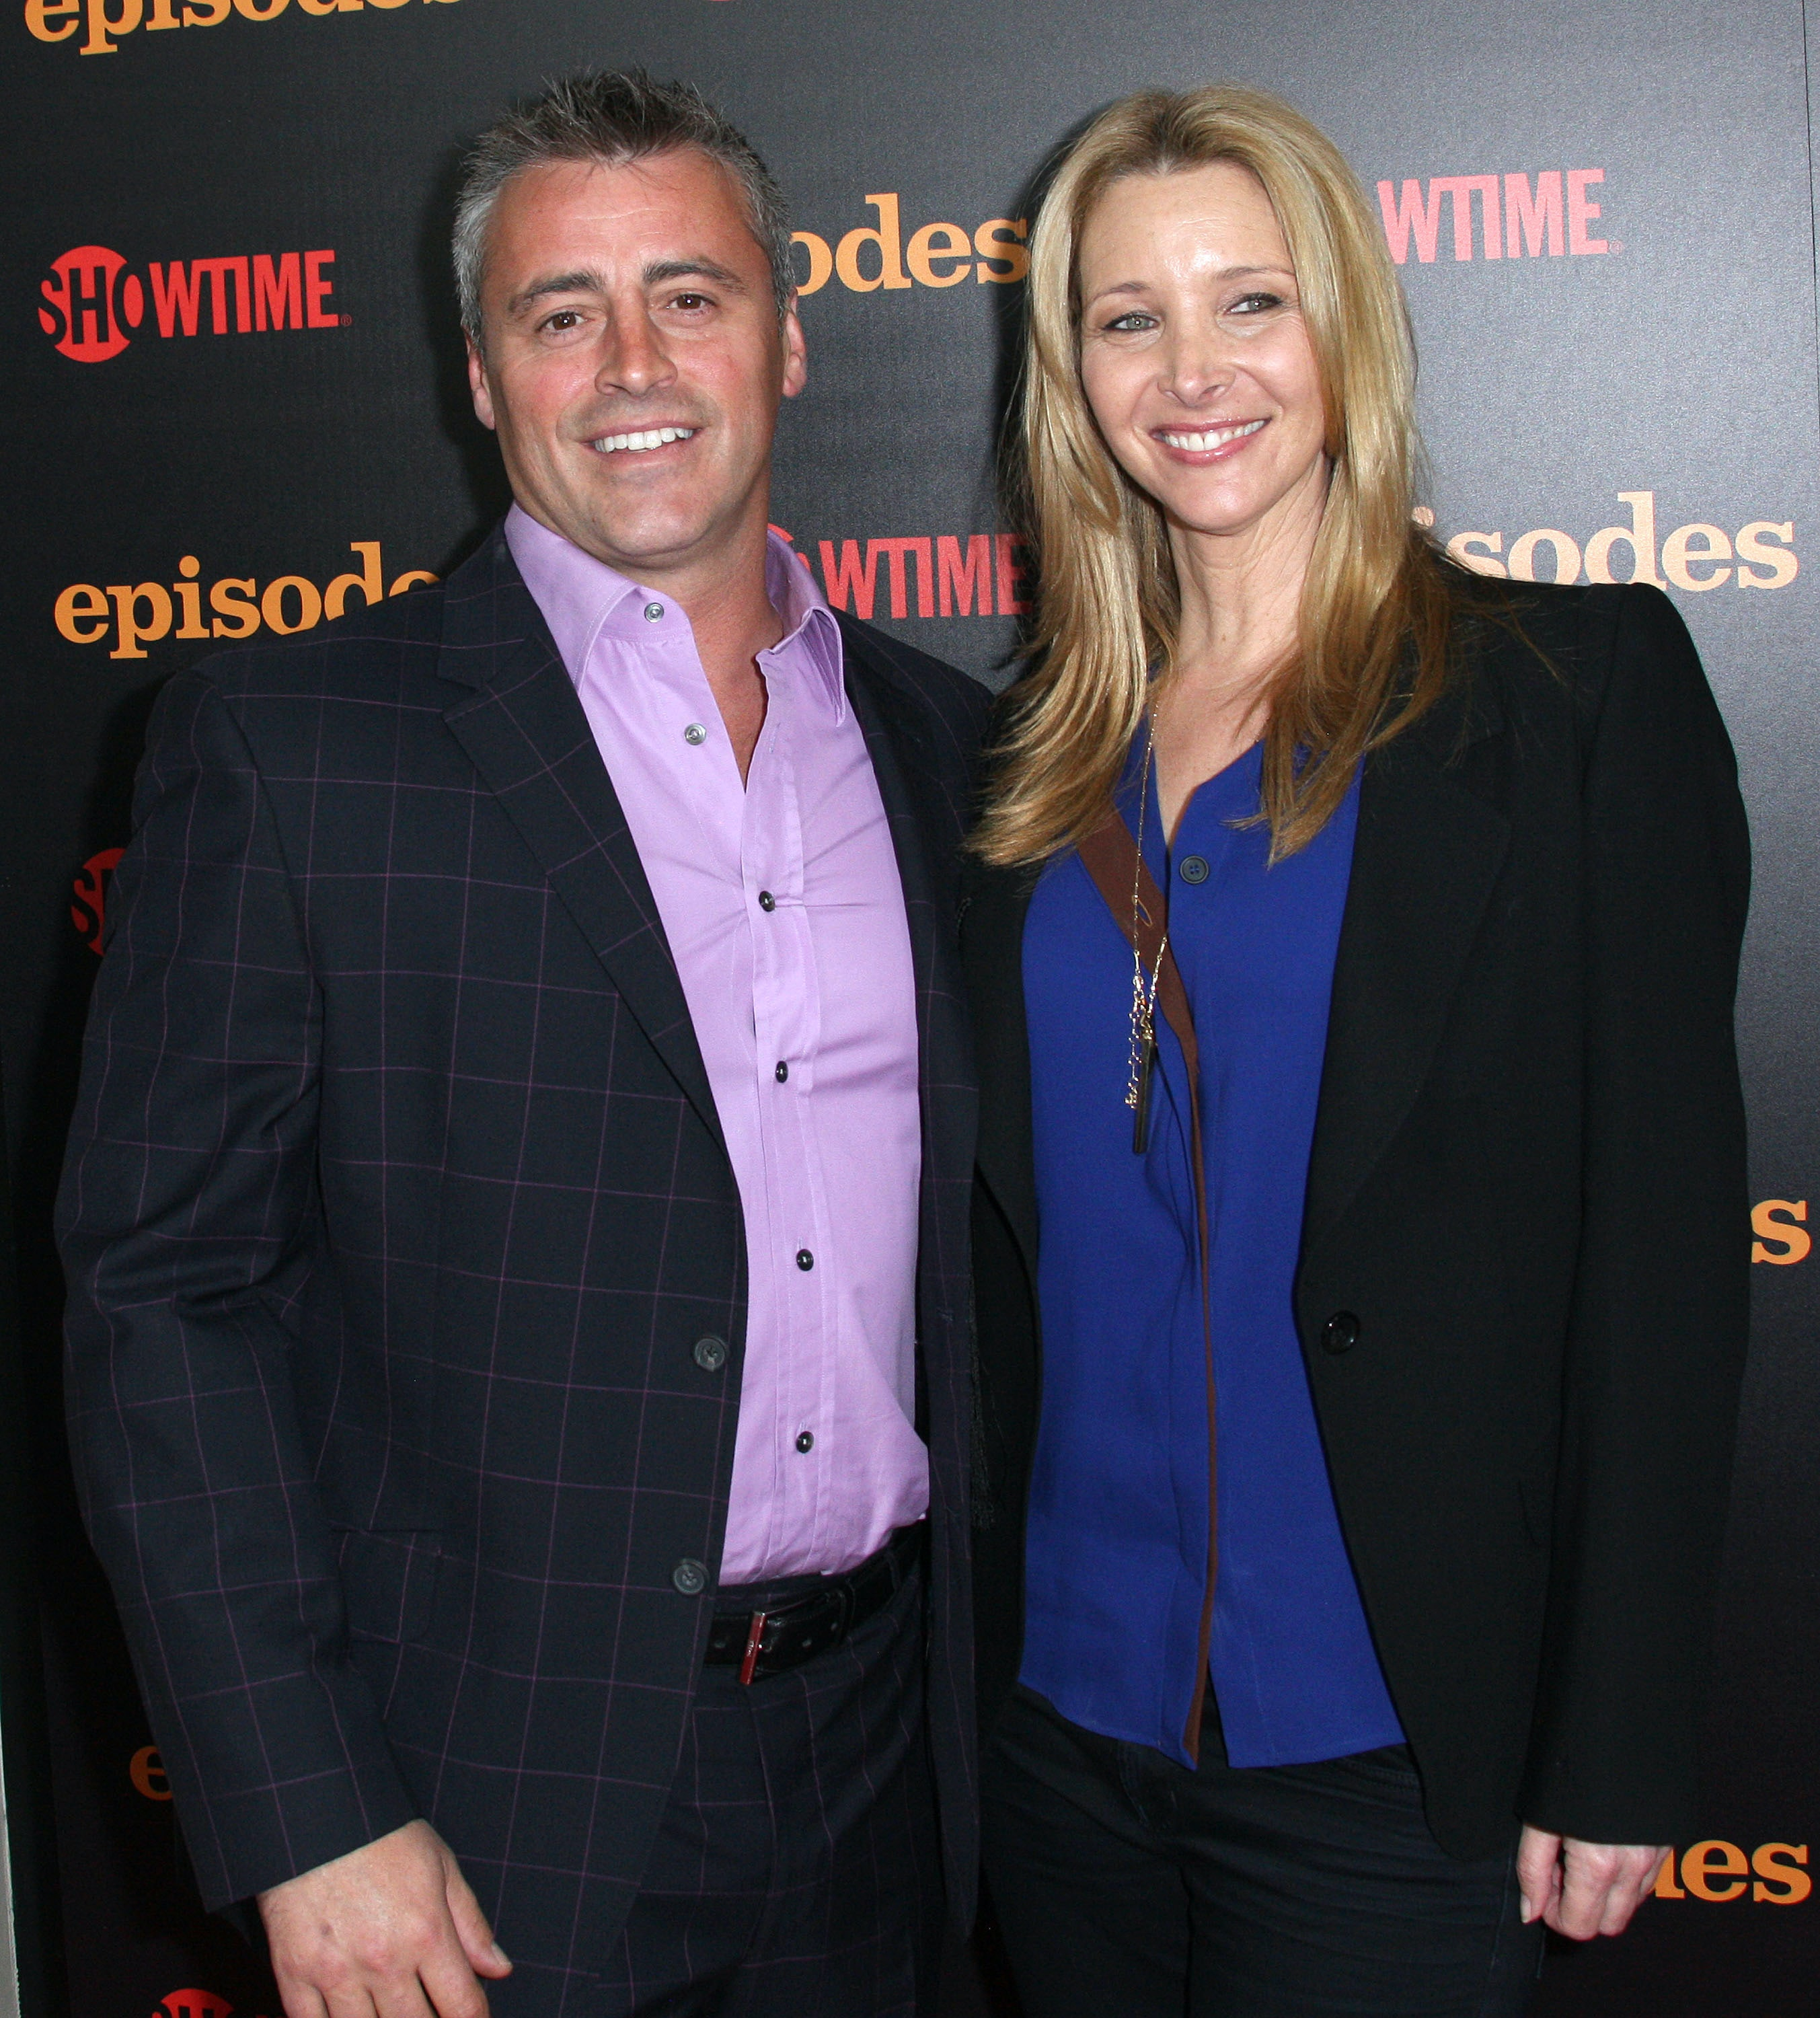 Friends' Star Lisa Kudrow Struggled To Play Phoebe, Until